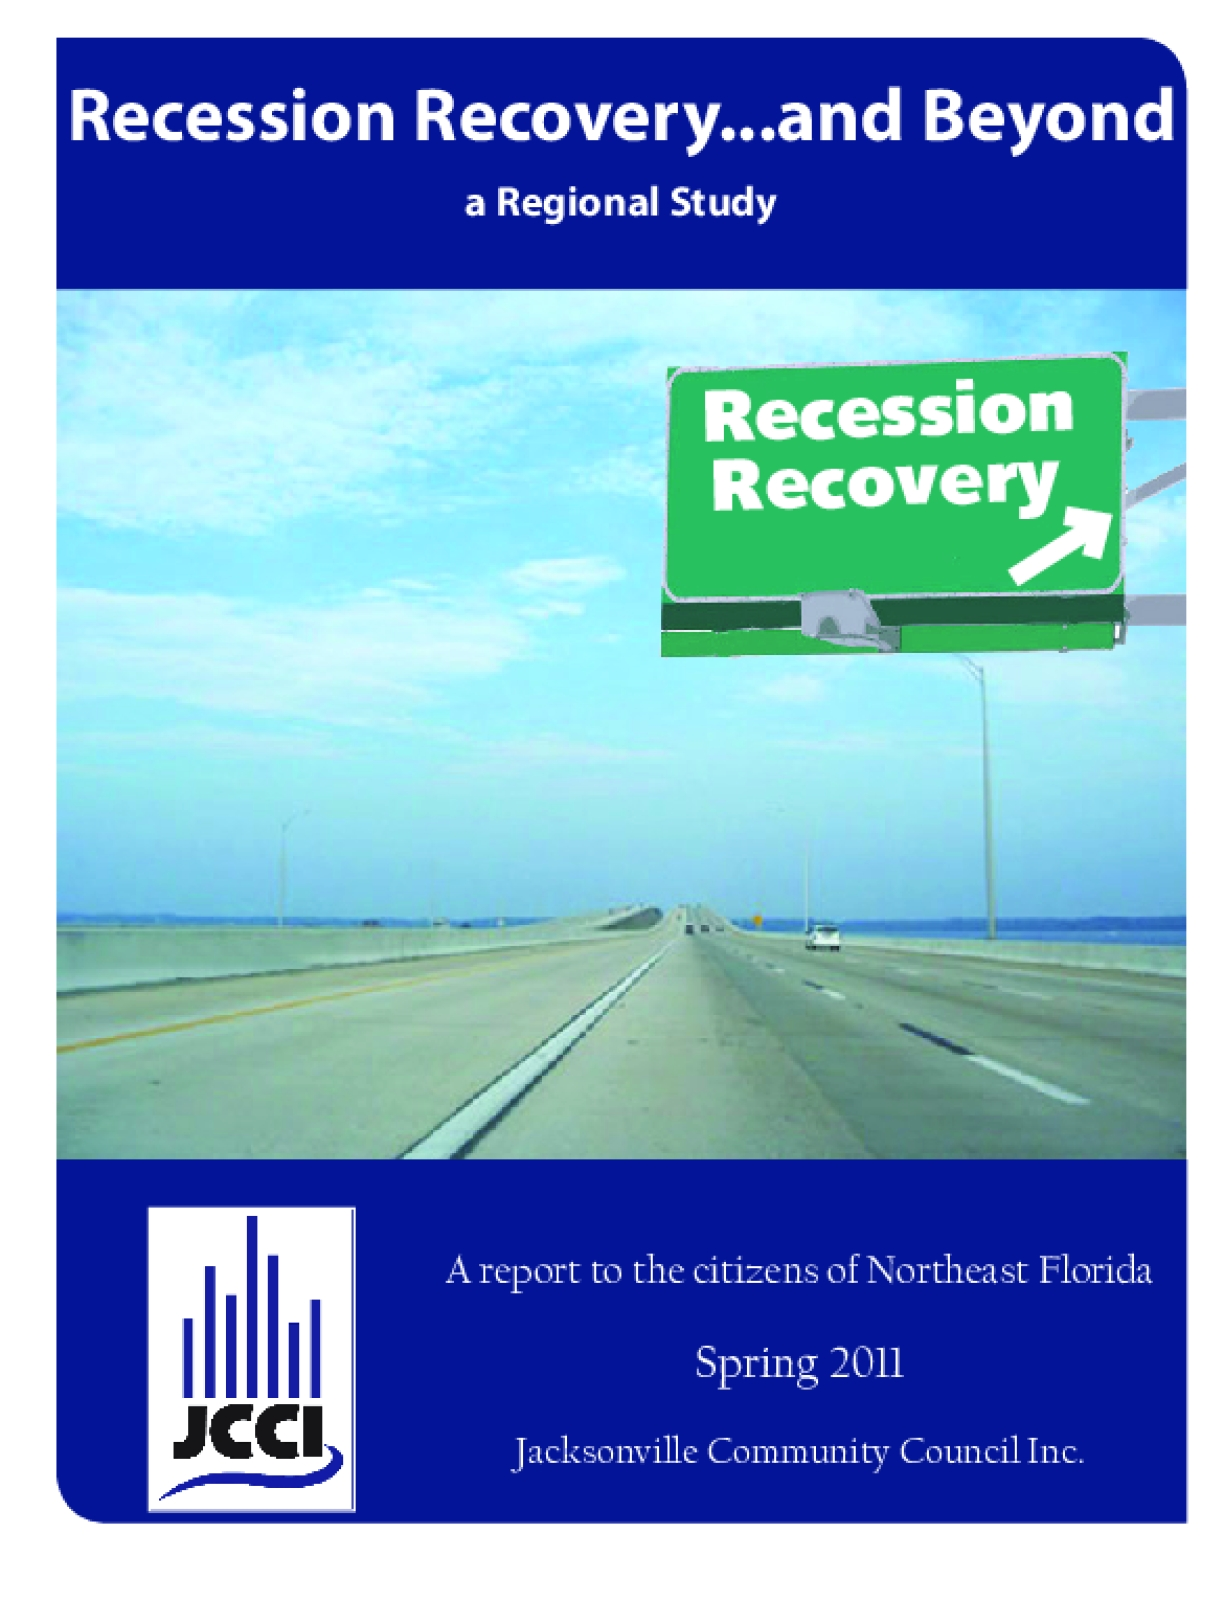 Recession Recovery...and Beyond: A Regional Study